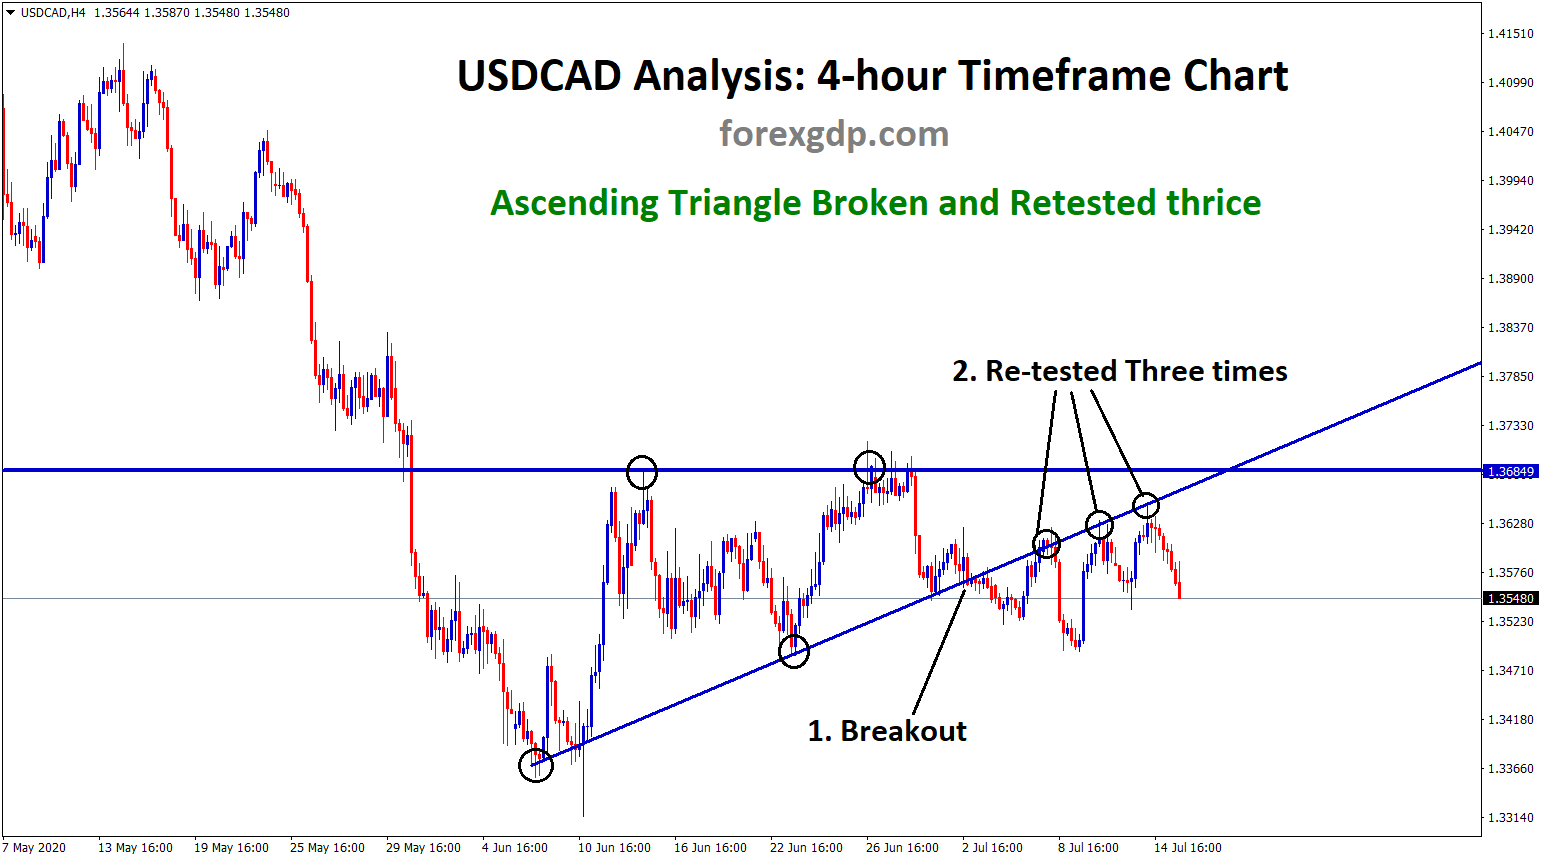 USDCAD ascending triangle chart pattern breakout